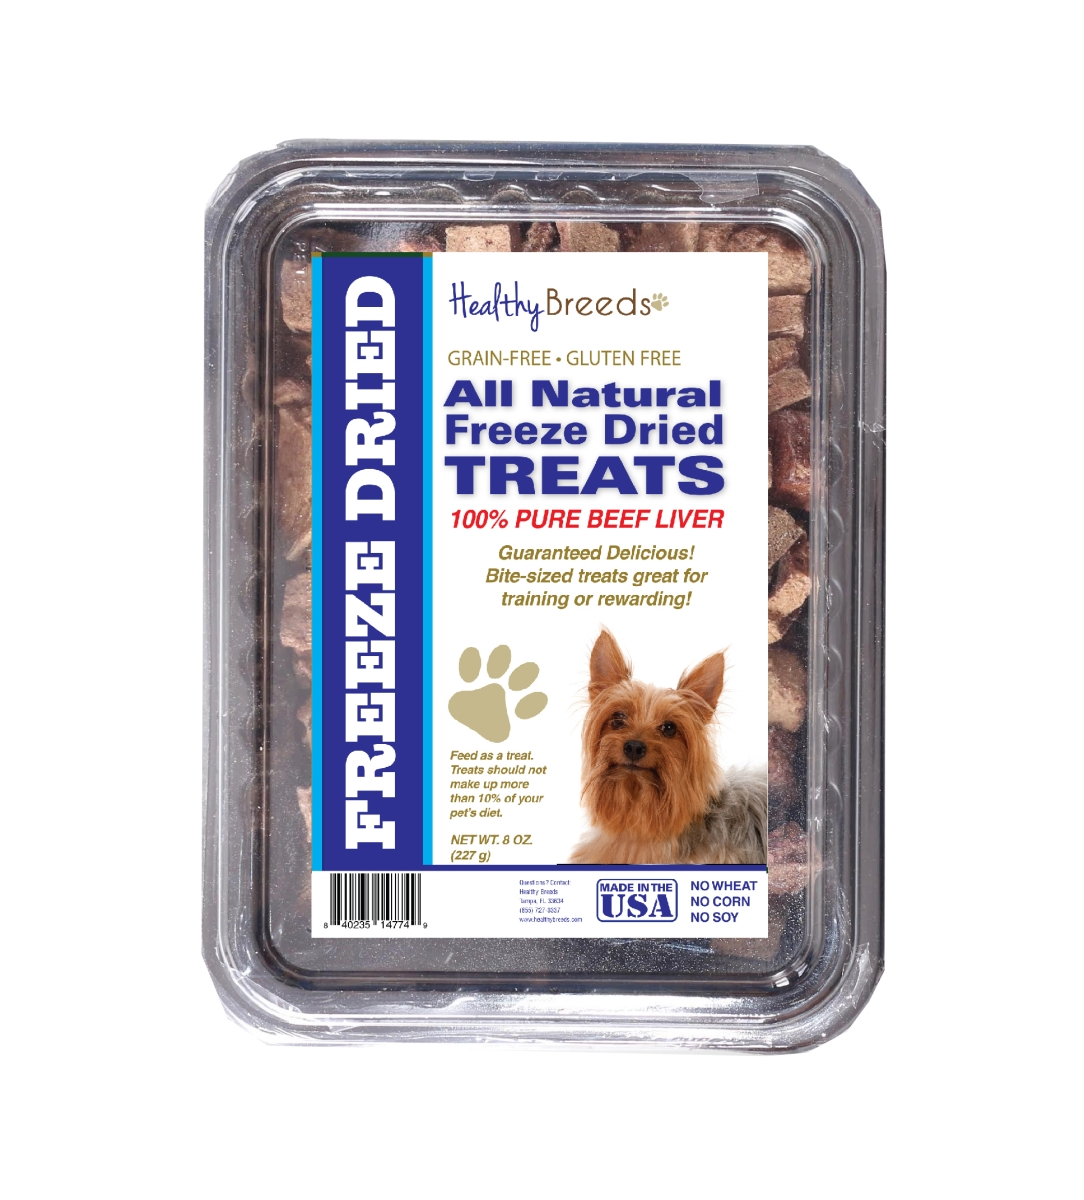 Healthy Breeds 840235148272 10 oz Silky Terrier All Natural Freeze Dried Treats Beef Liver